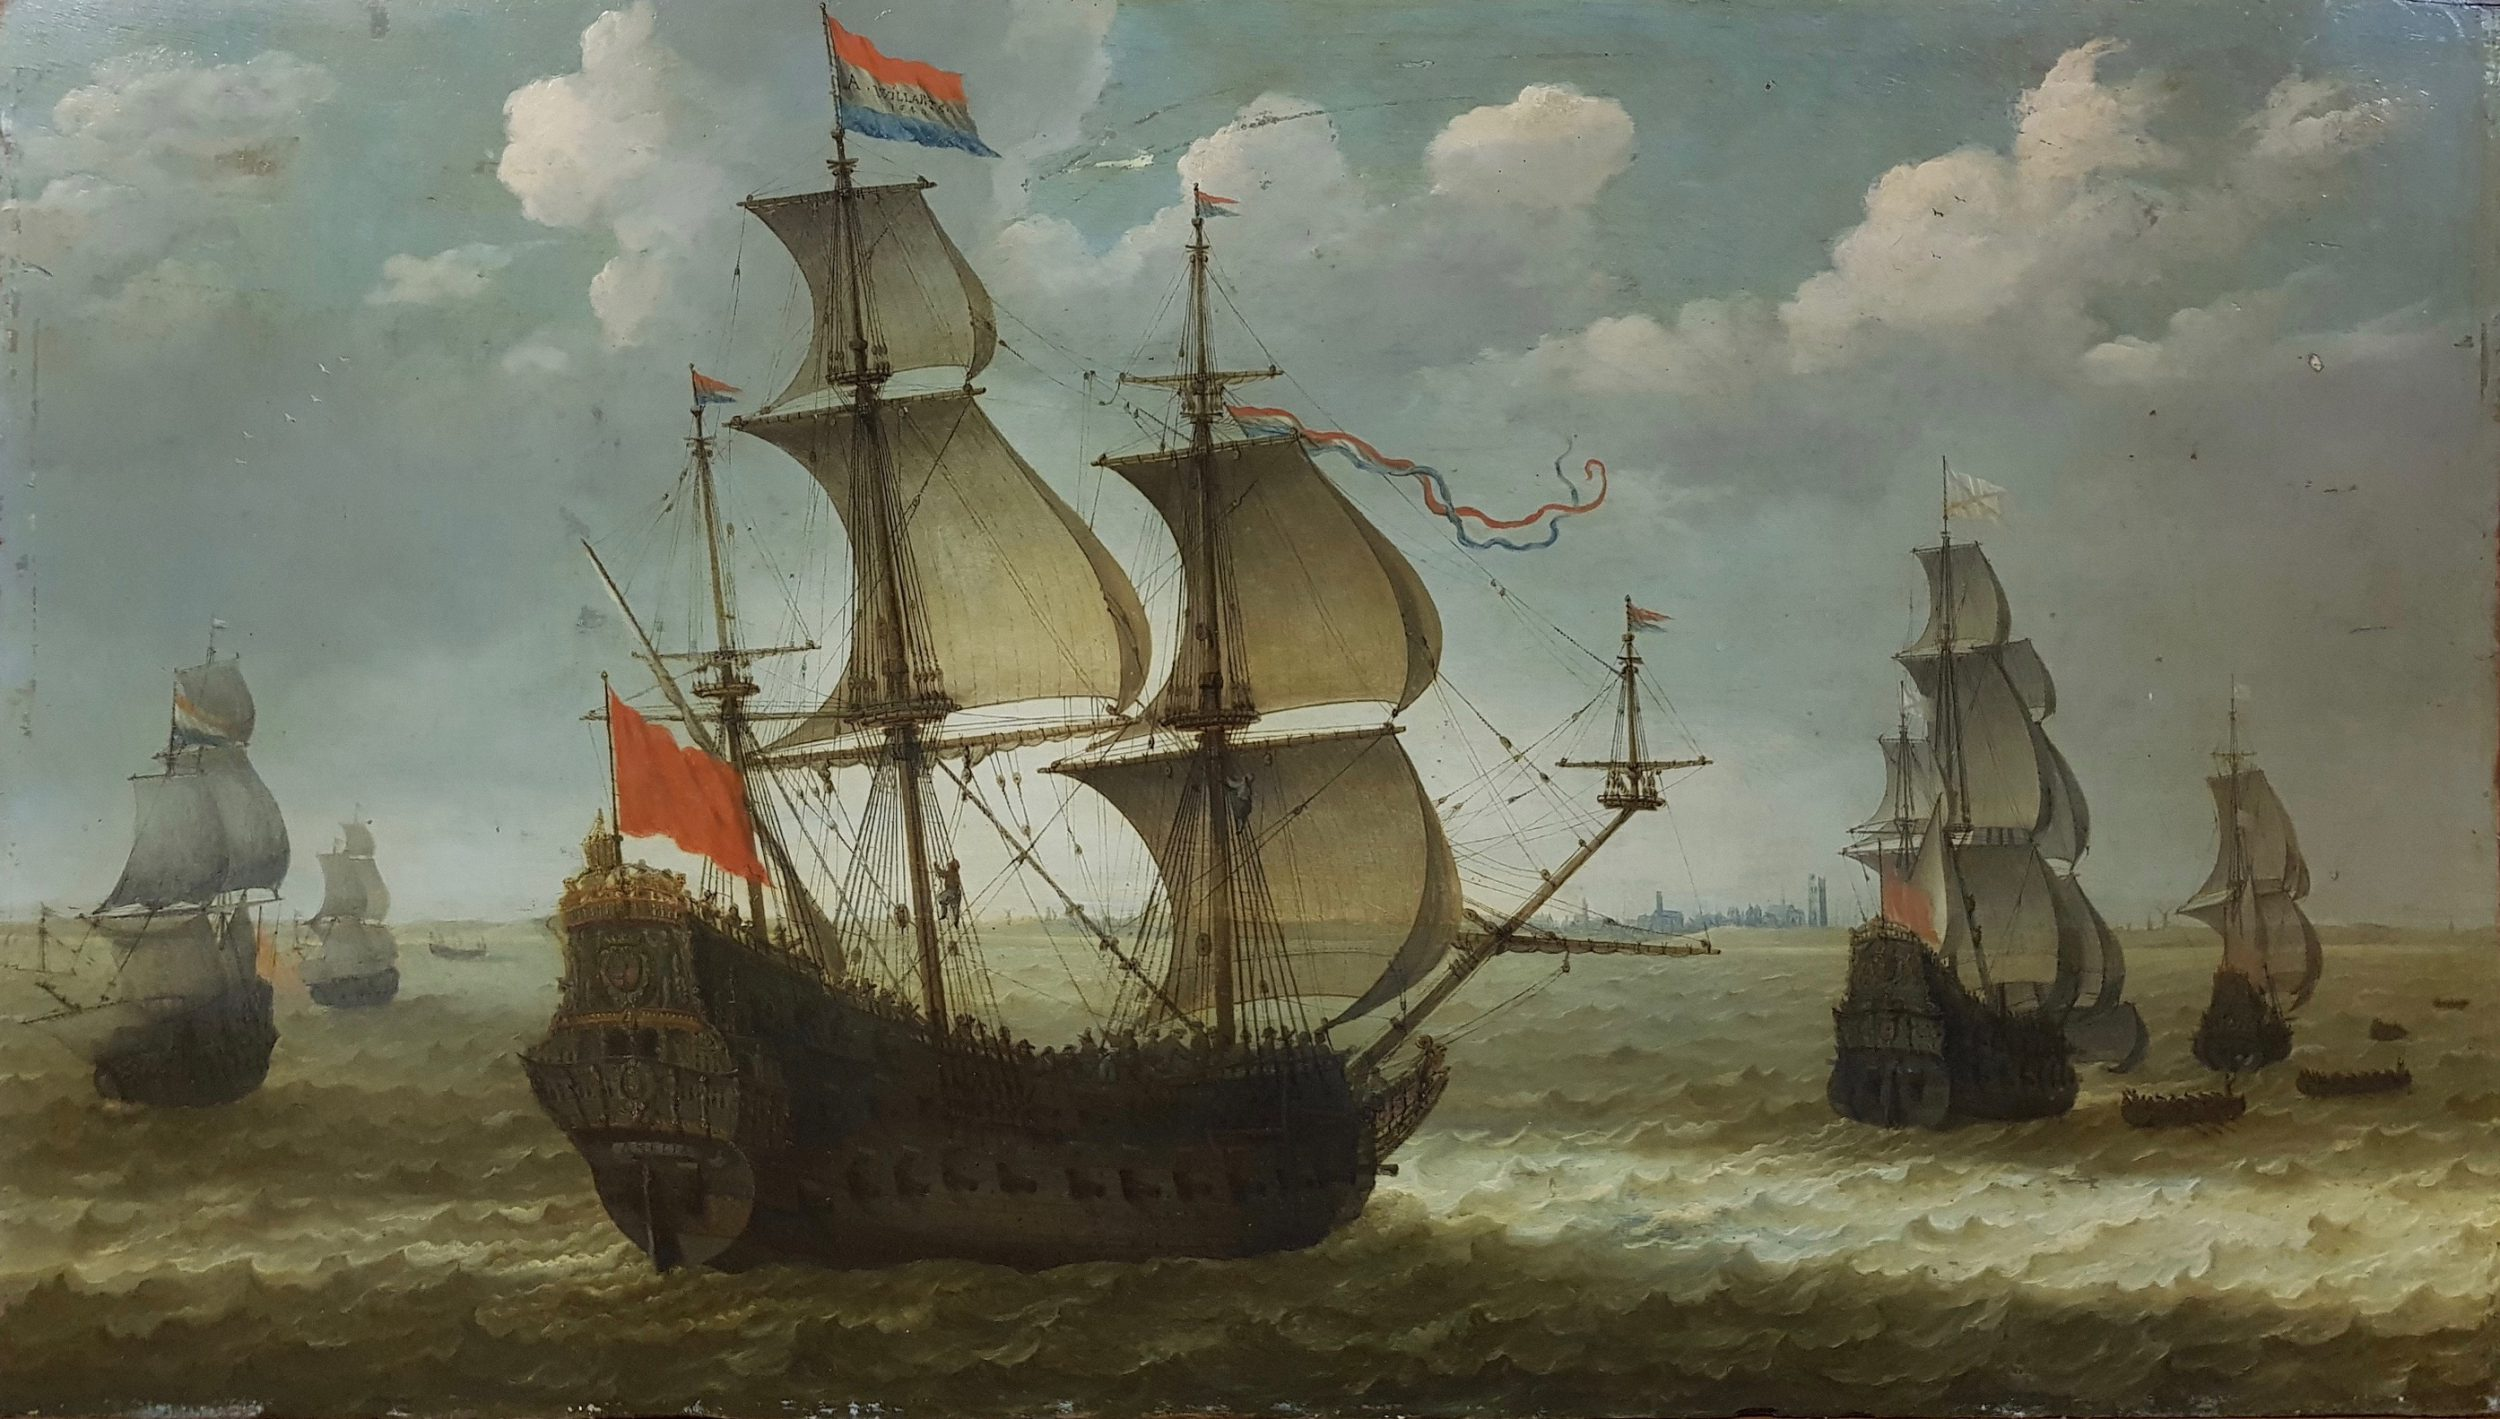 De Amelia off the Coast of Dunekerk